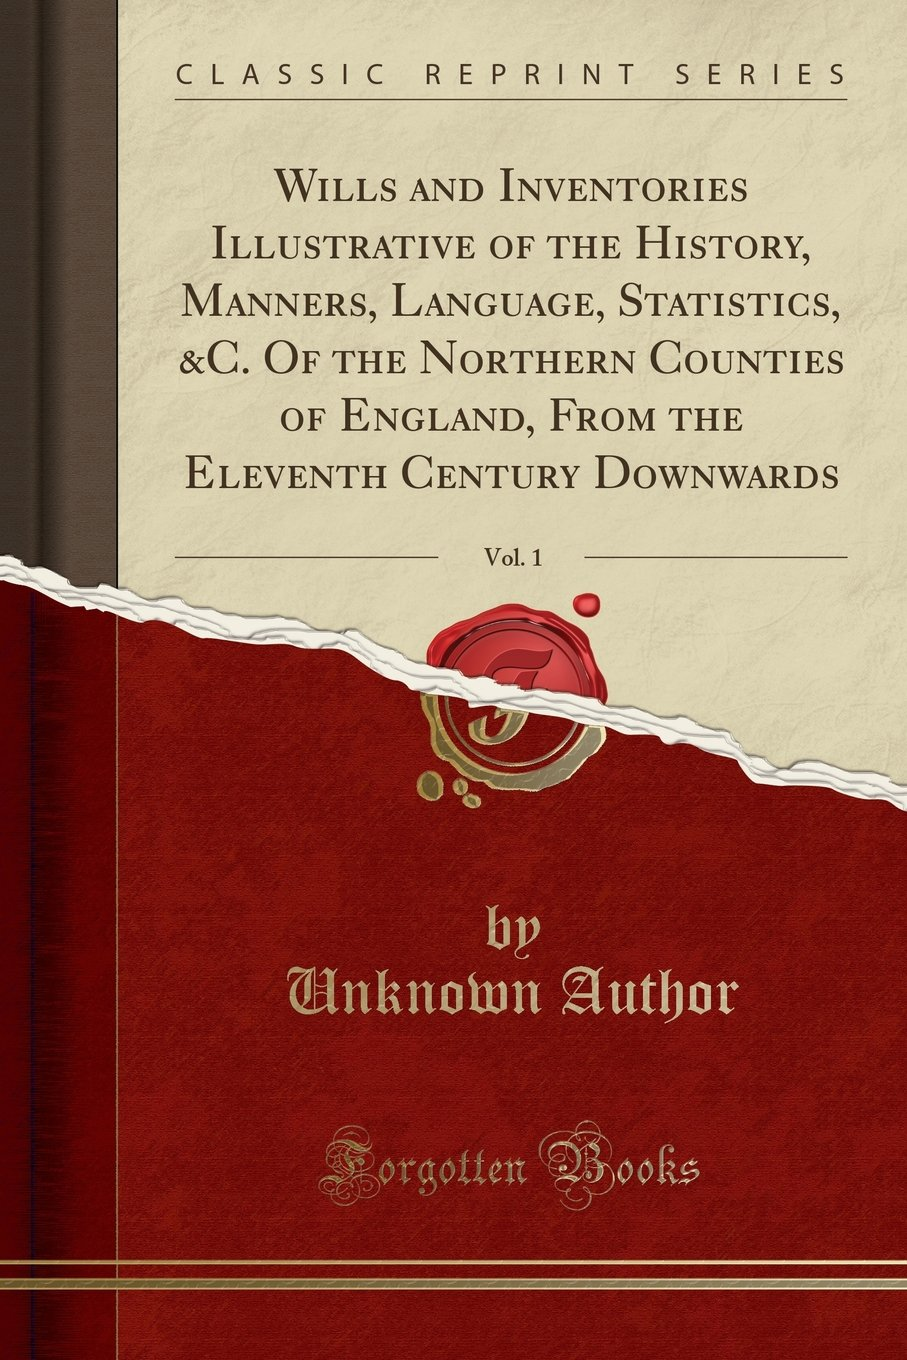 Wills and Inventories Illustrative of the History, Manners, Language, Statistics, &C. Of the Northern Counties of England, From the Eleventh Century Downwards, Vol. 1 (Classic Reprint)